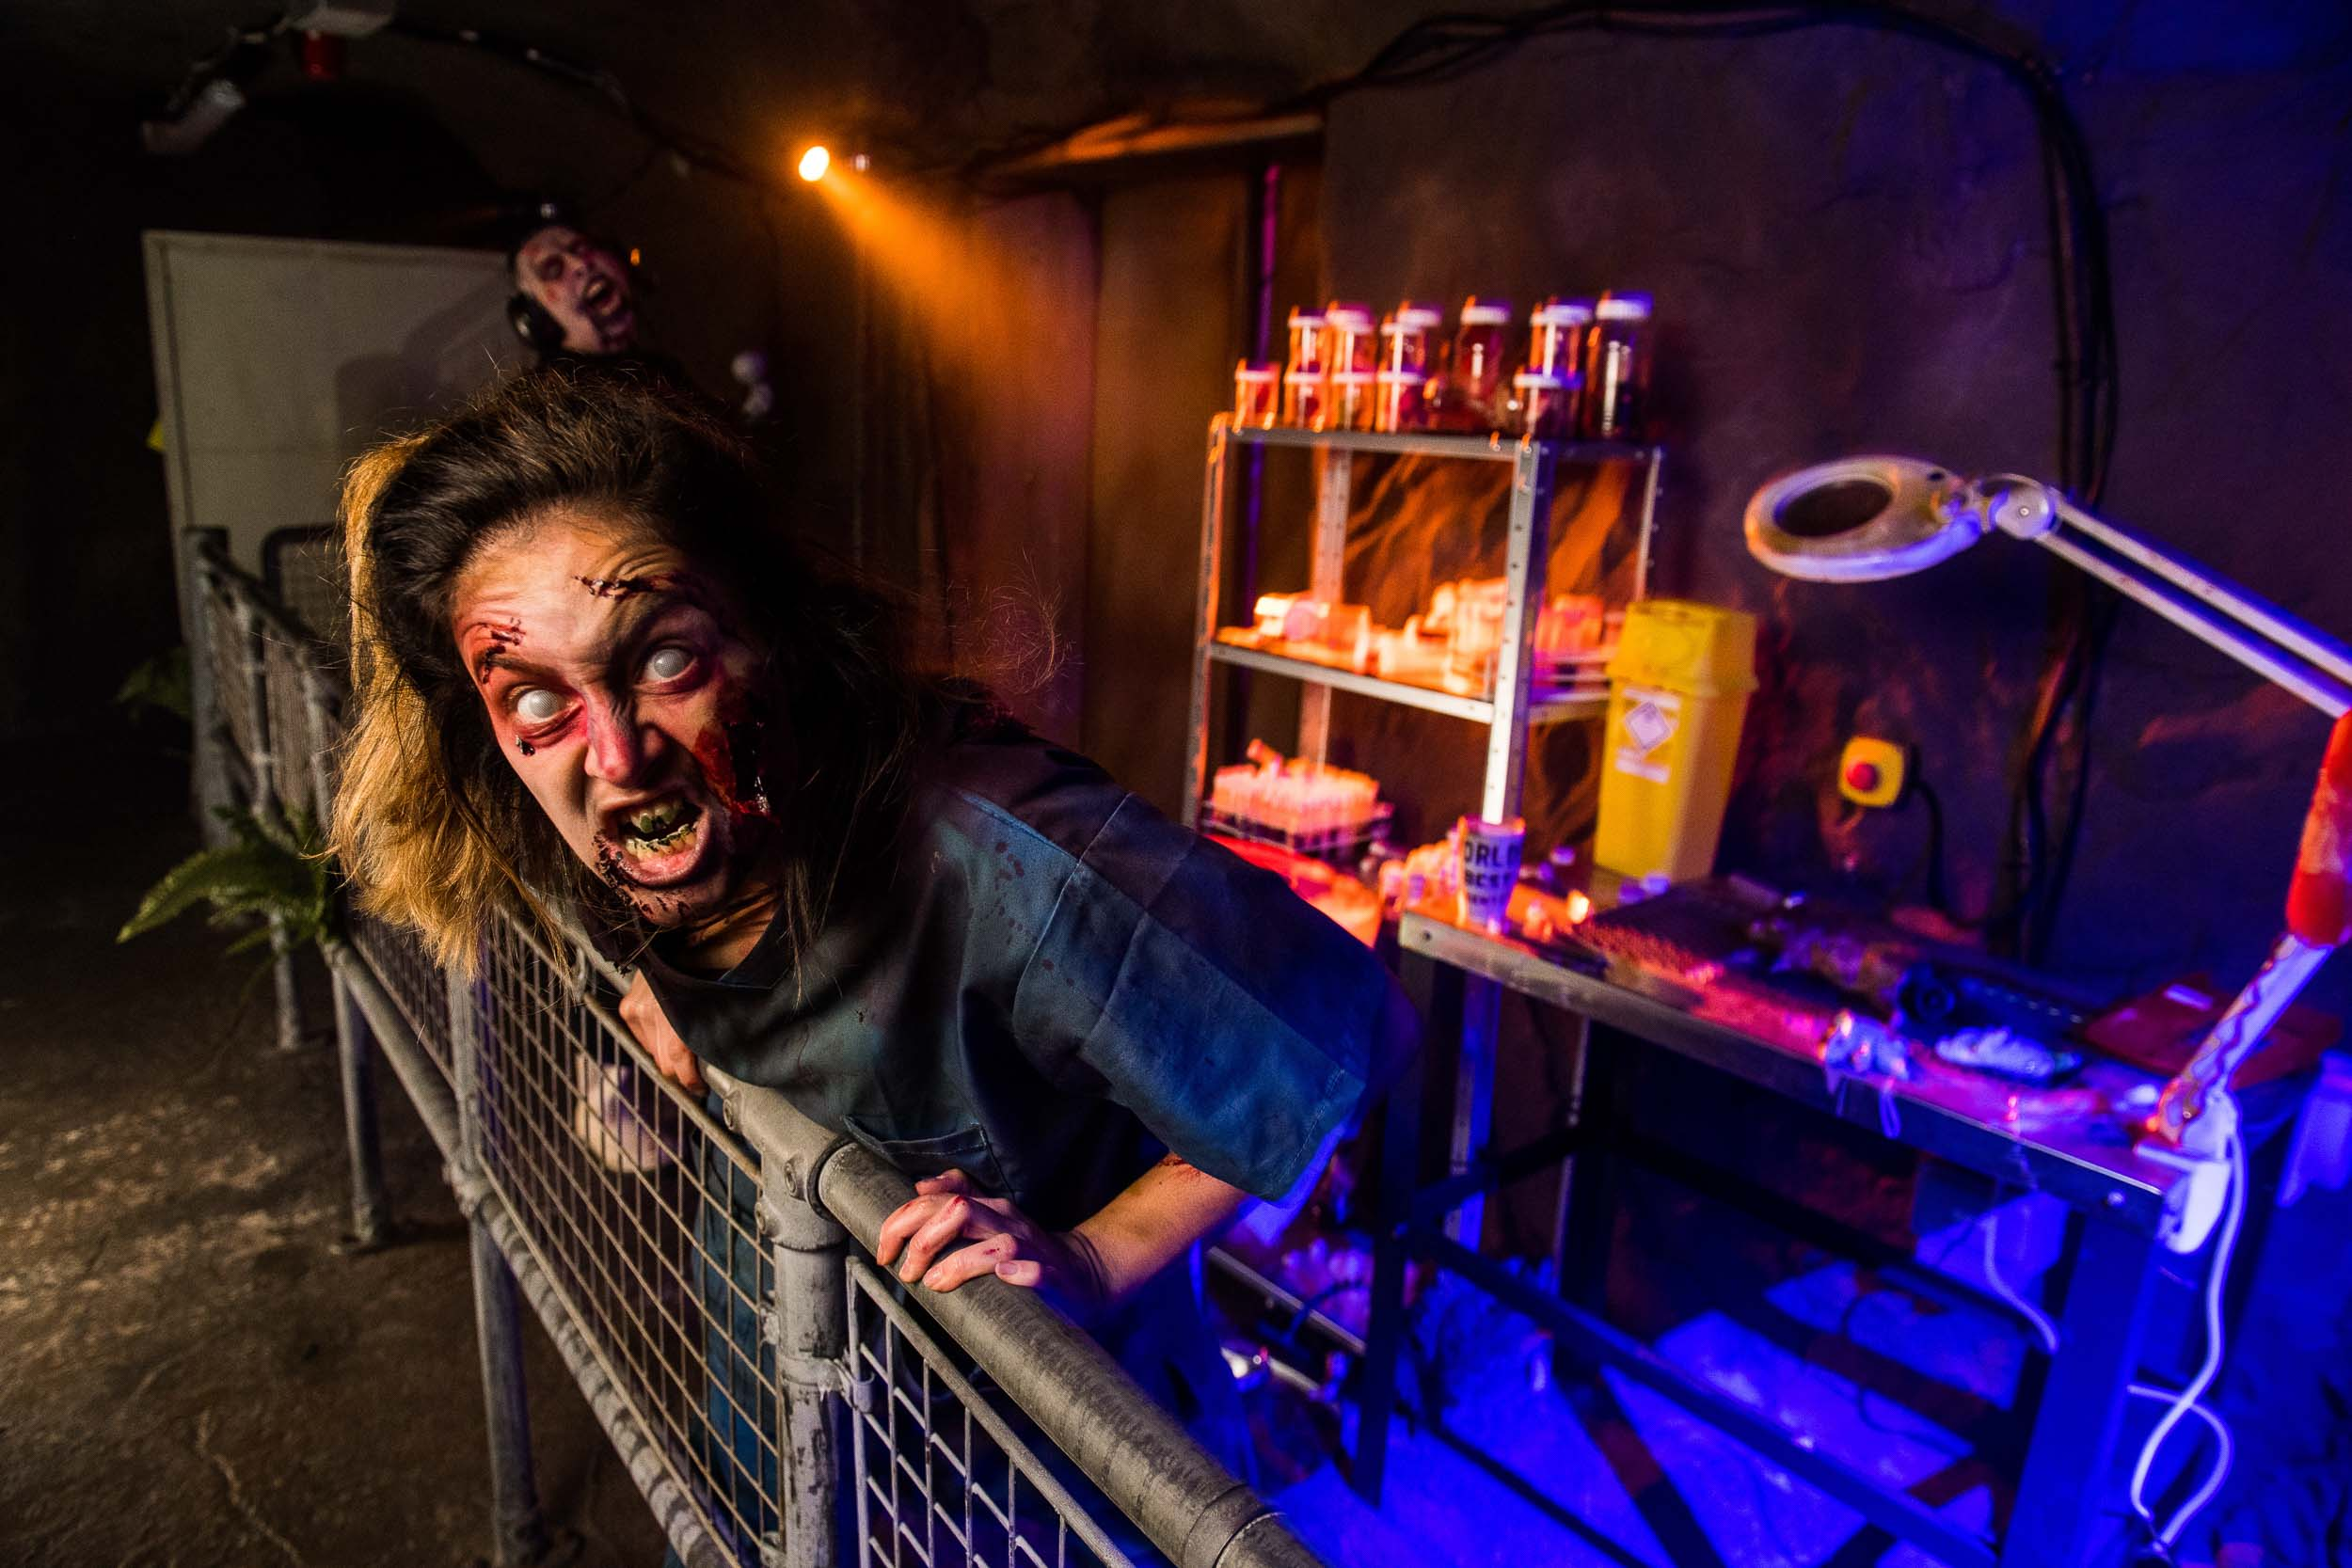 A zombie scares visitors to a theme park in England. Photographs of Scarefest at Alton Towers Manchester photographer